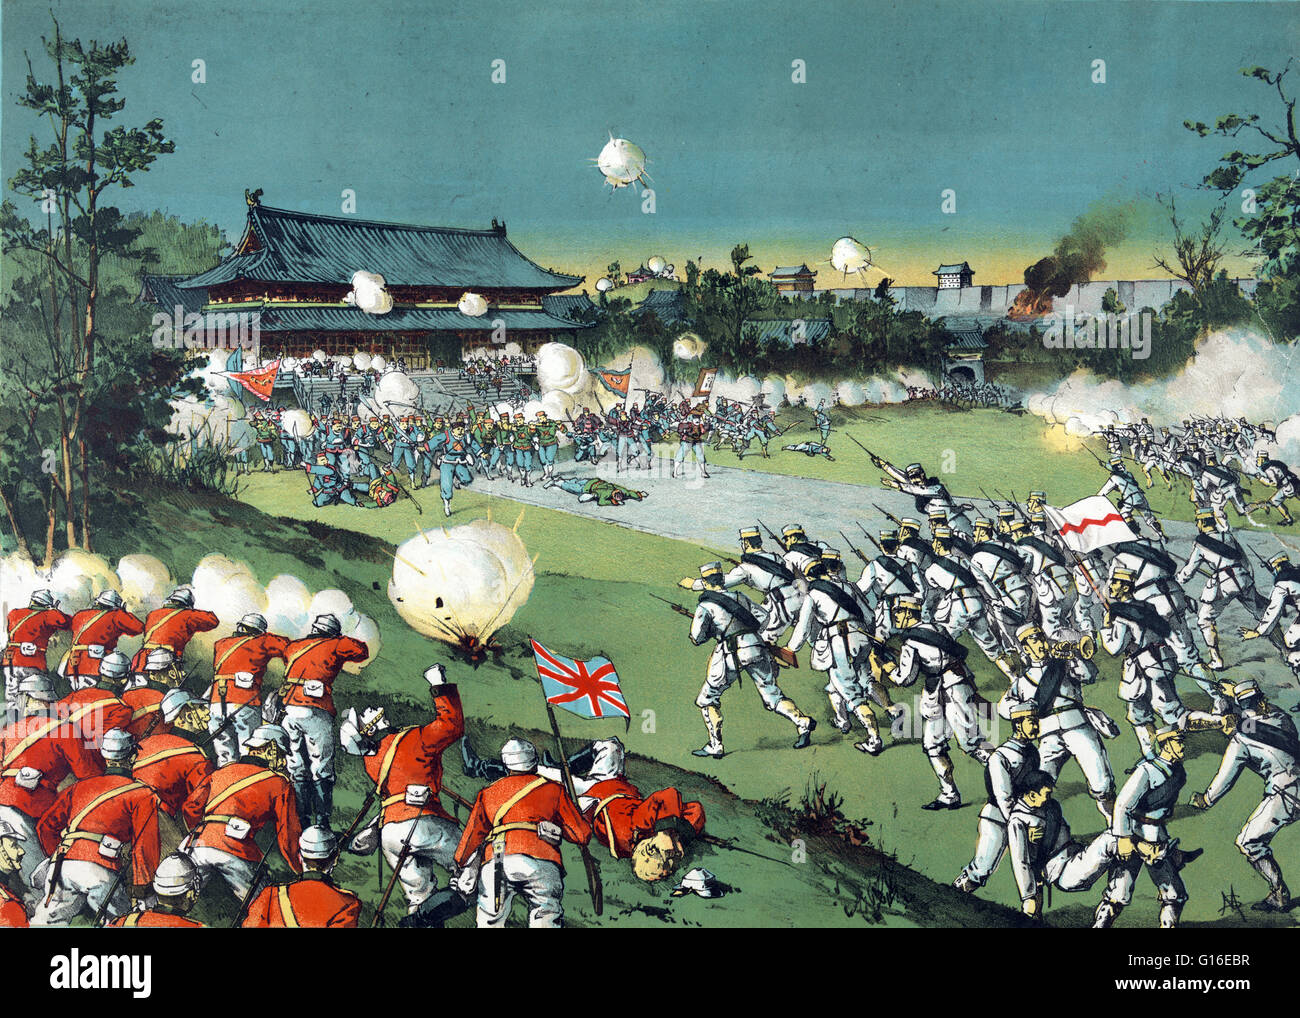 "Entitled: ""The fall of the Pekin castle, the hostile army being beaten away from the imperial castle by the allied Stock Photo"